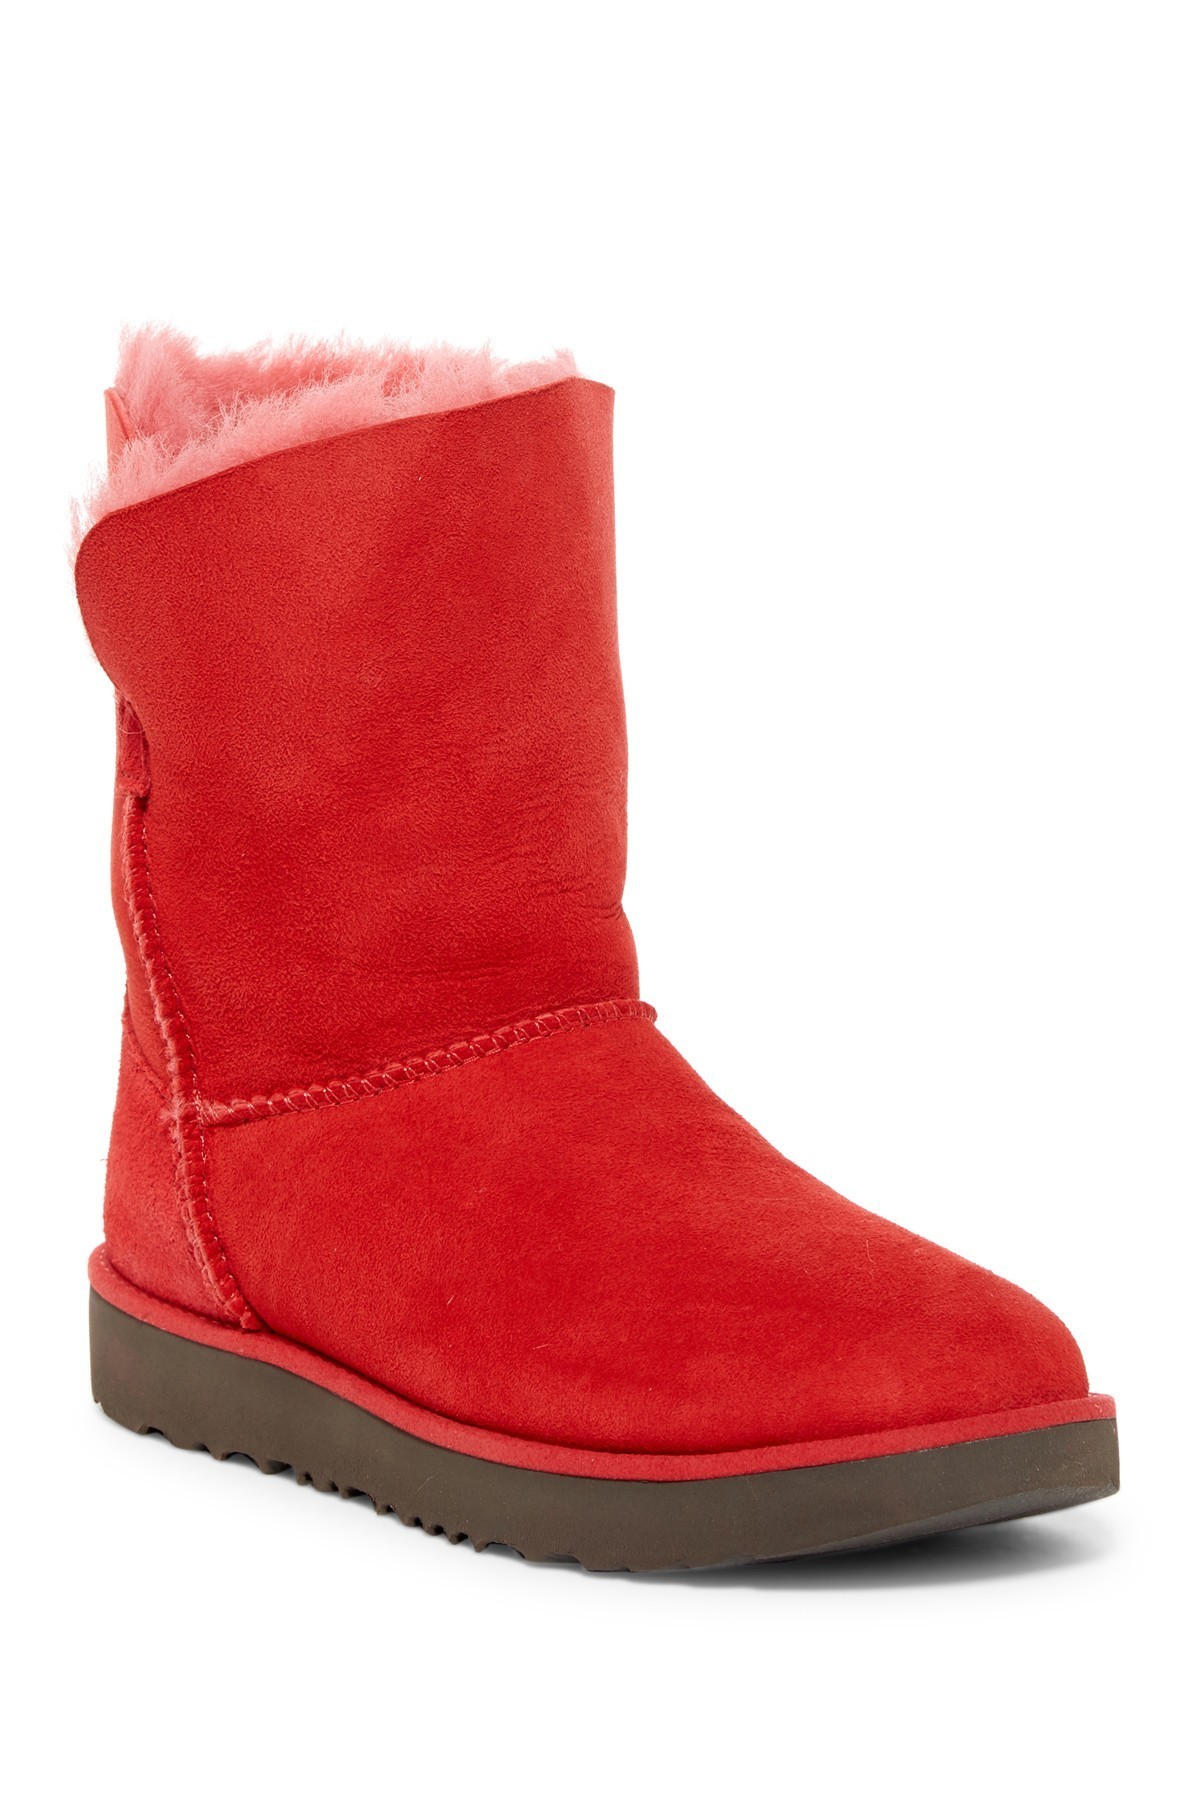 UGG Australia セール!Cuff Genuine Shearling Lined Boot (2色)